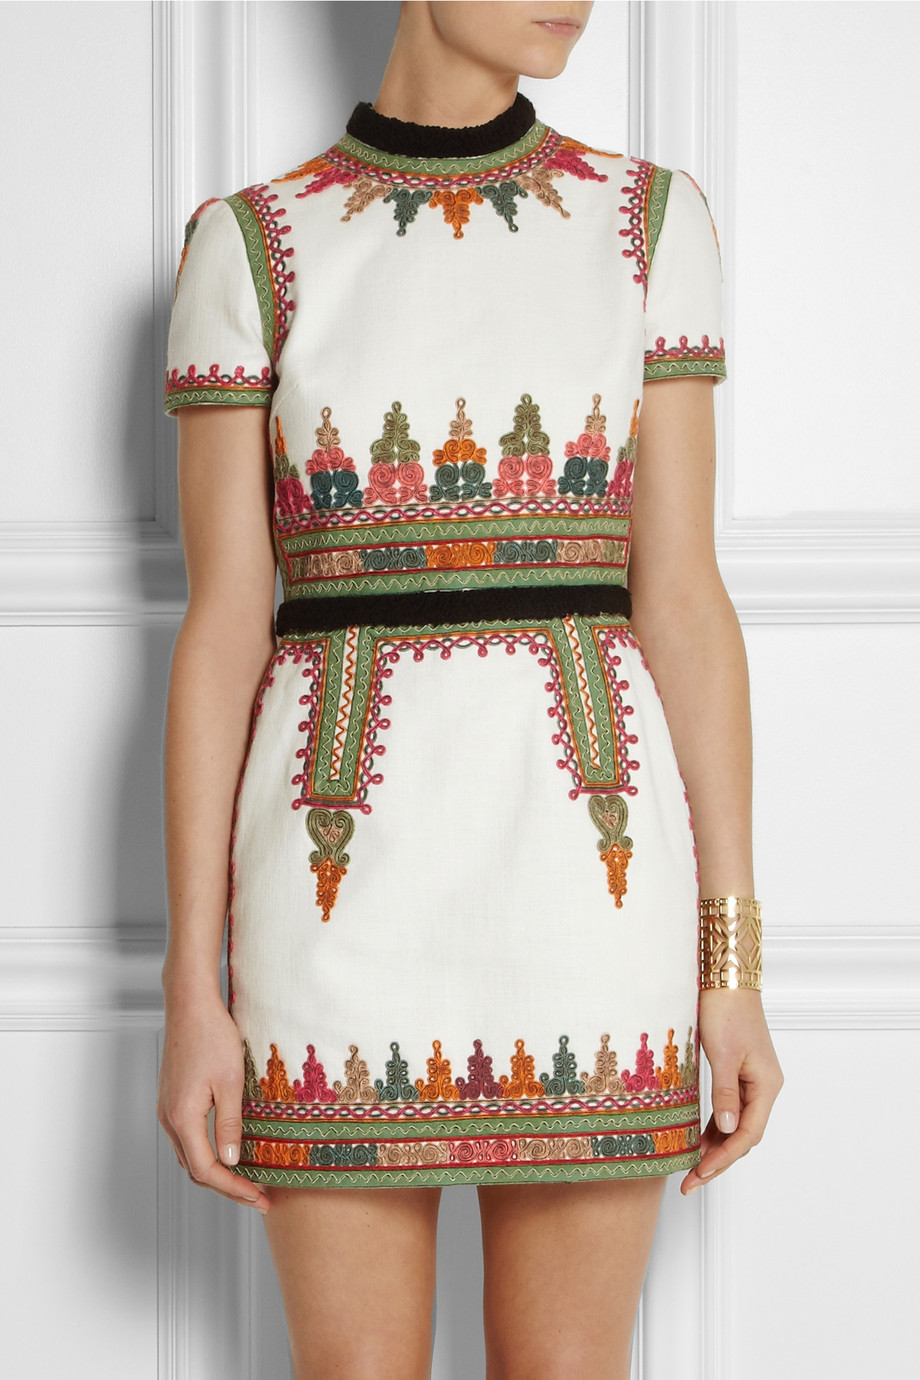 """total eye candy, file this one under """"trust fund shopping"""". Valentino, price: don't ask"""